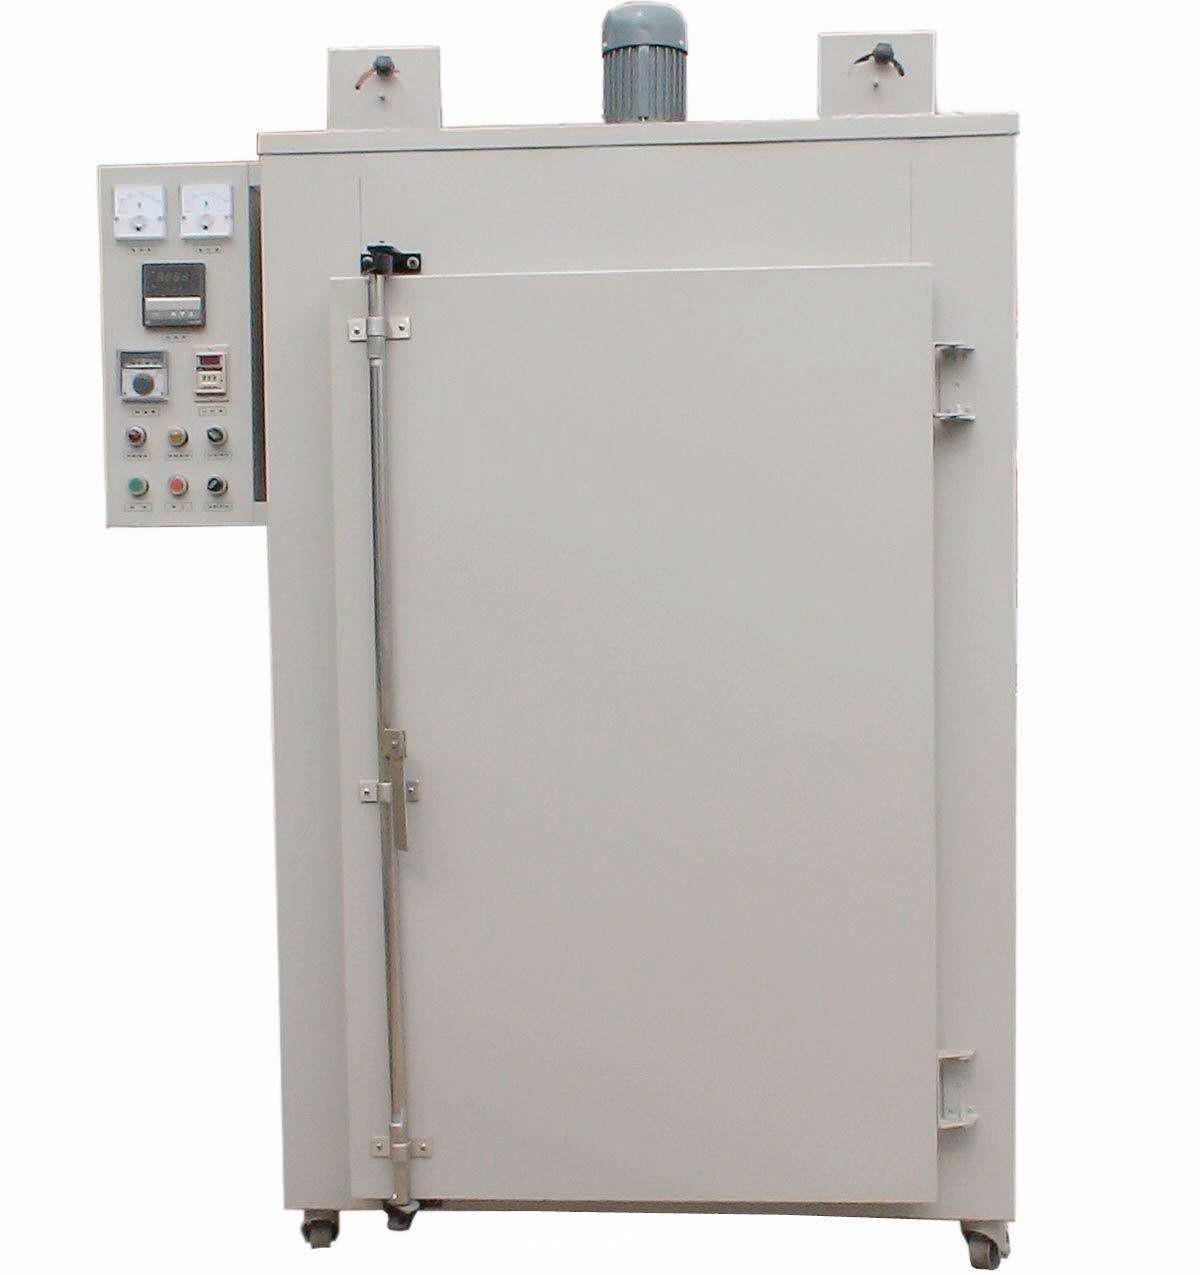 L058 SMT Electronic Equipment PCB Baking Drying Oven Price with Competitive Price